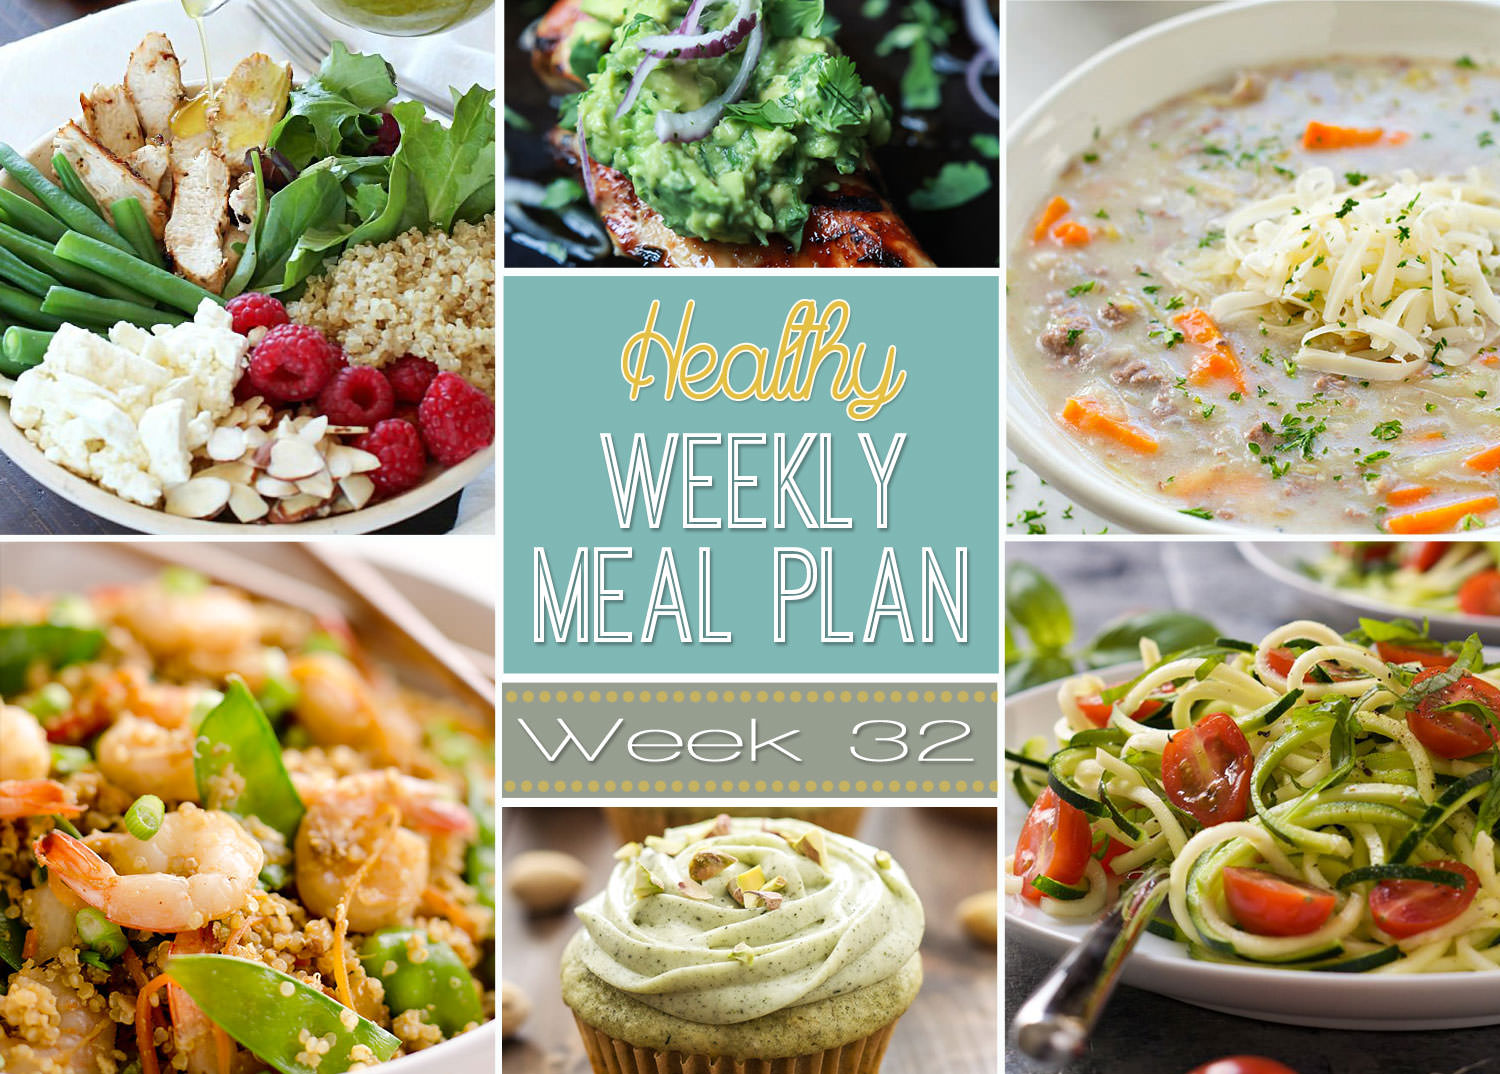 Week 32 is filled with fresh dishes like Zucchini Caprese Salad, Lighter Cheeseburger Soup and Green Tea Cupcakes for that sweet tooth!